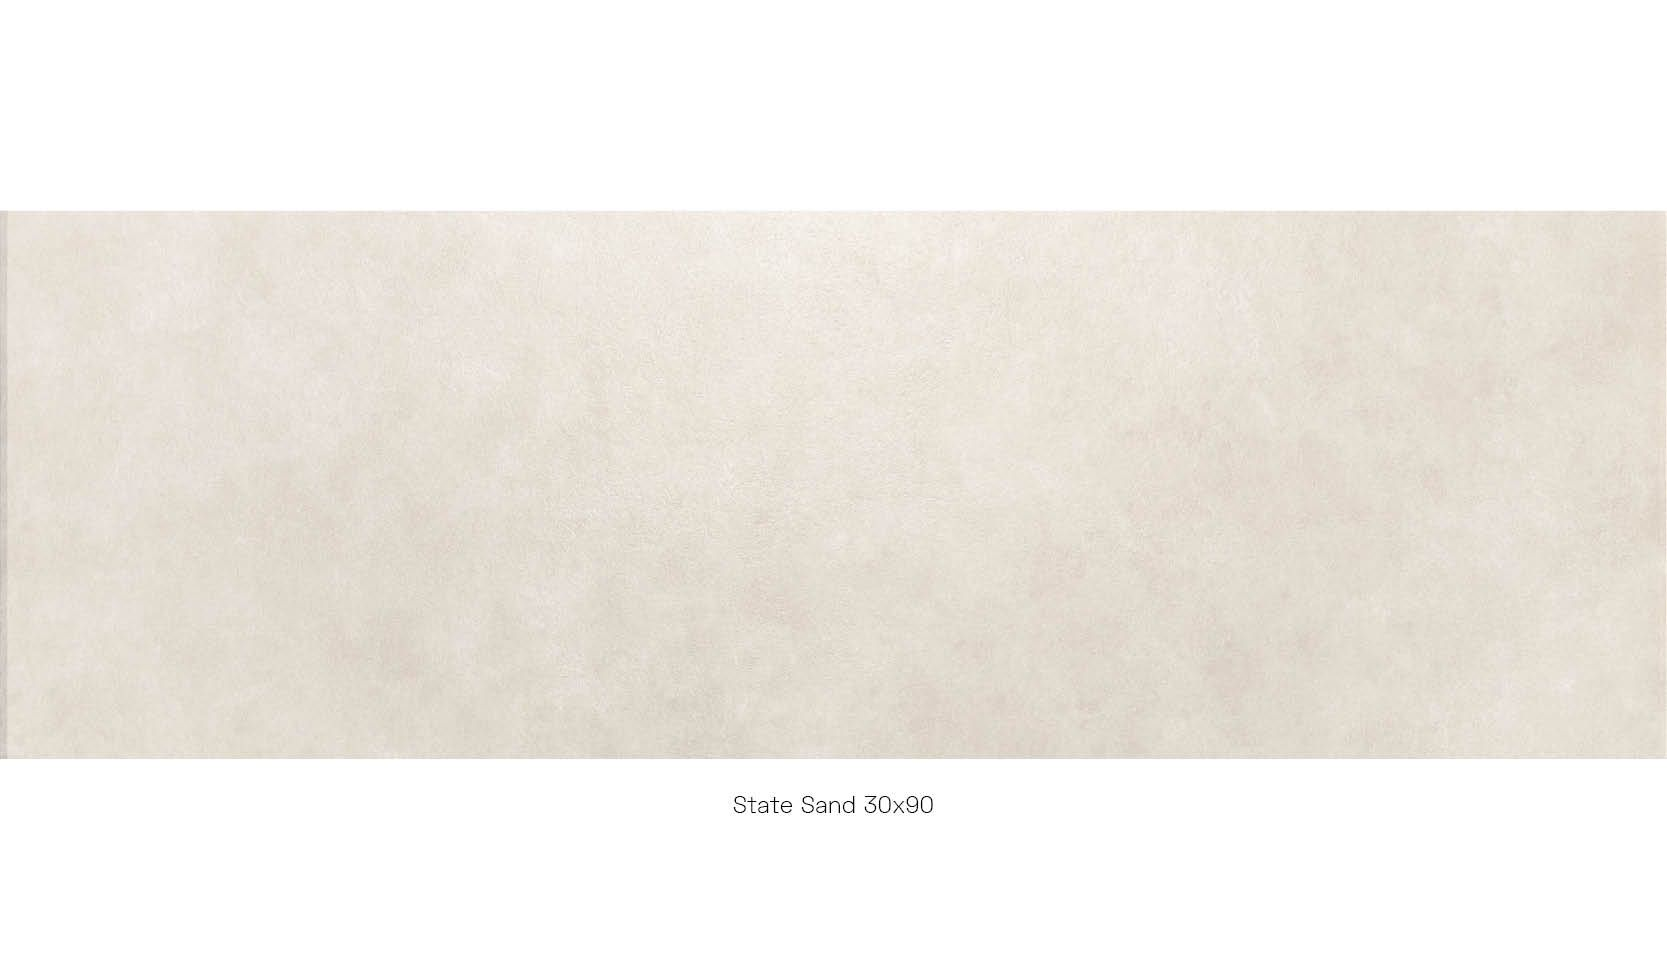 State Sand 30 x 90